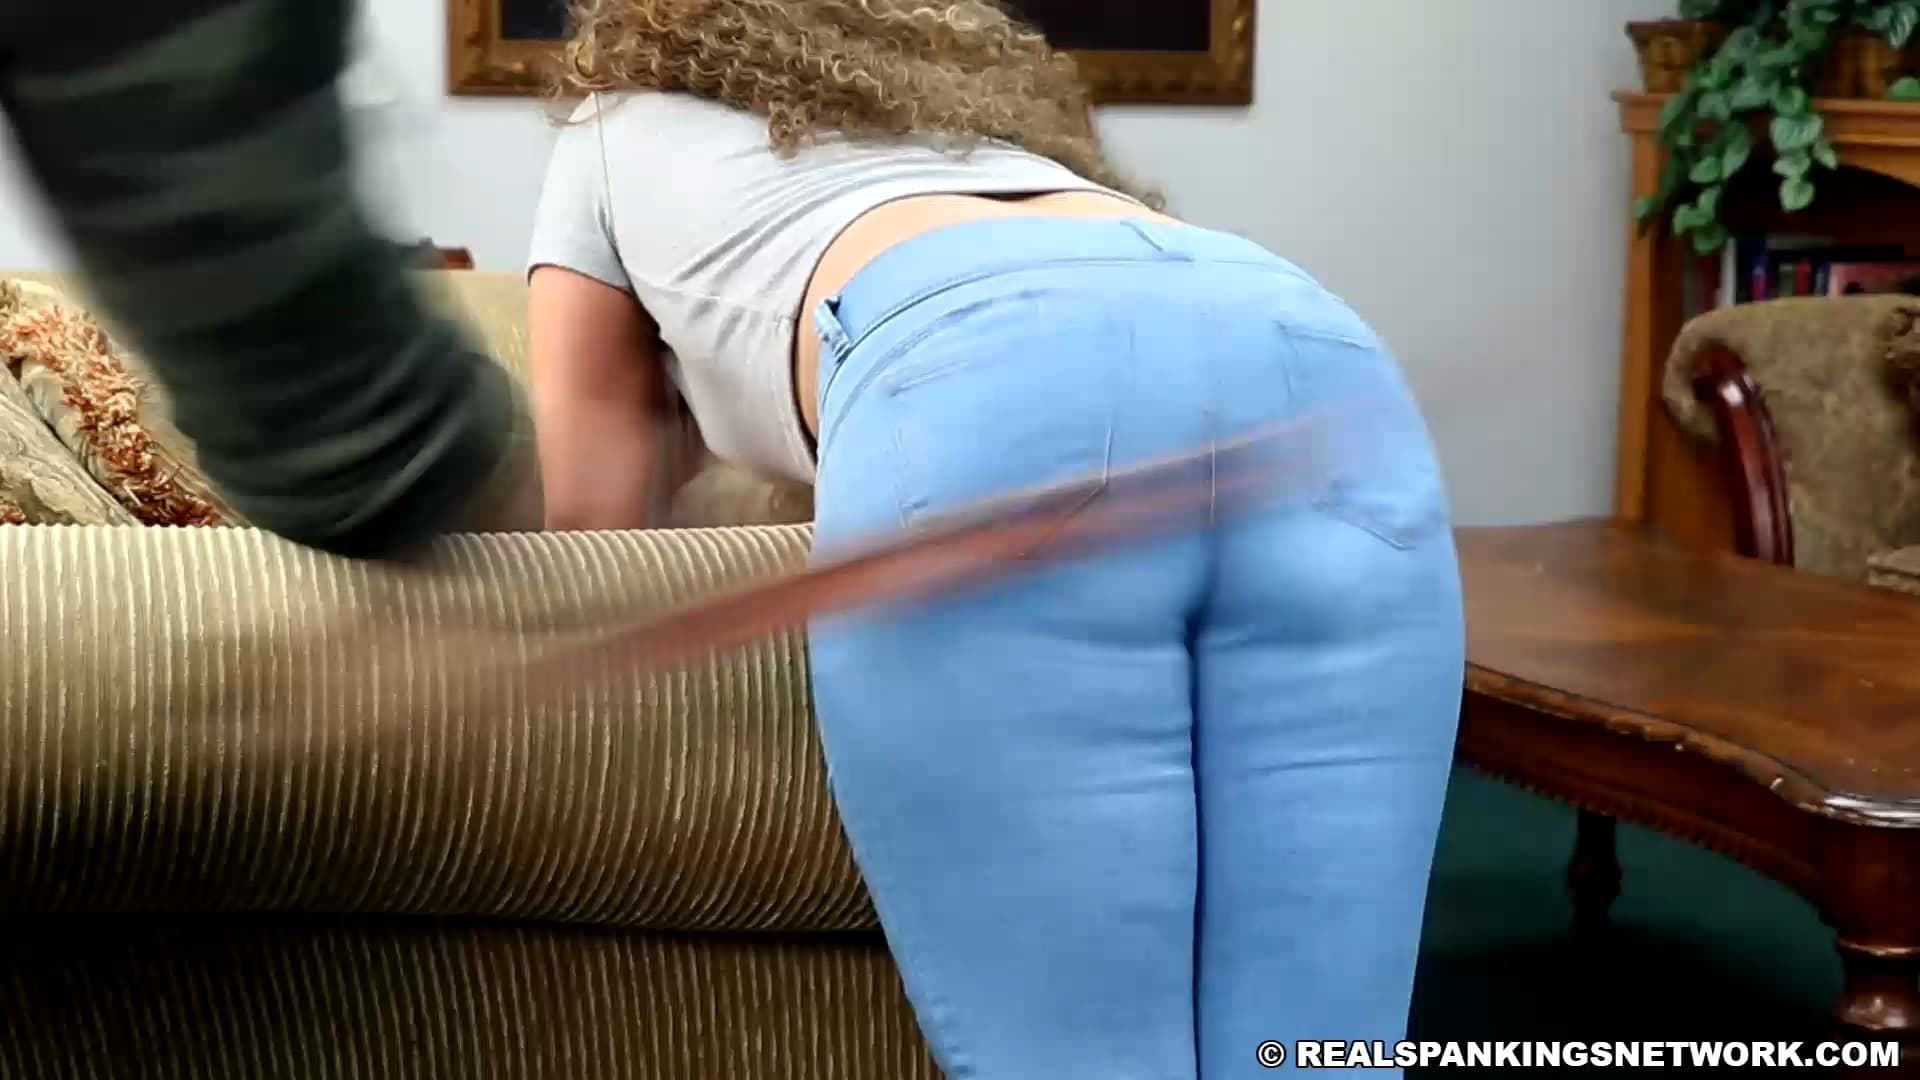 Kiki Cali Kikis Bad Attitude Earns Her A Whoopin.mp4 snapshot 02.04.758 1 - Real Spankings – MP4/Full HD – Kiki Cali - Kiki's Bad Attitude Earns Her A Whoopin'